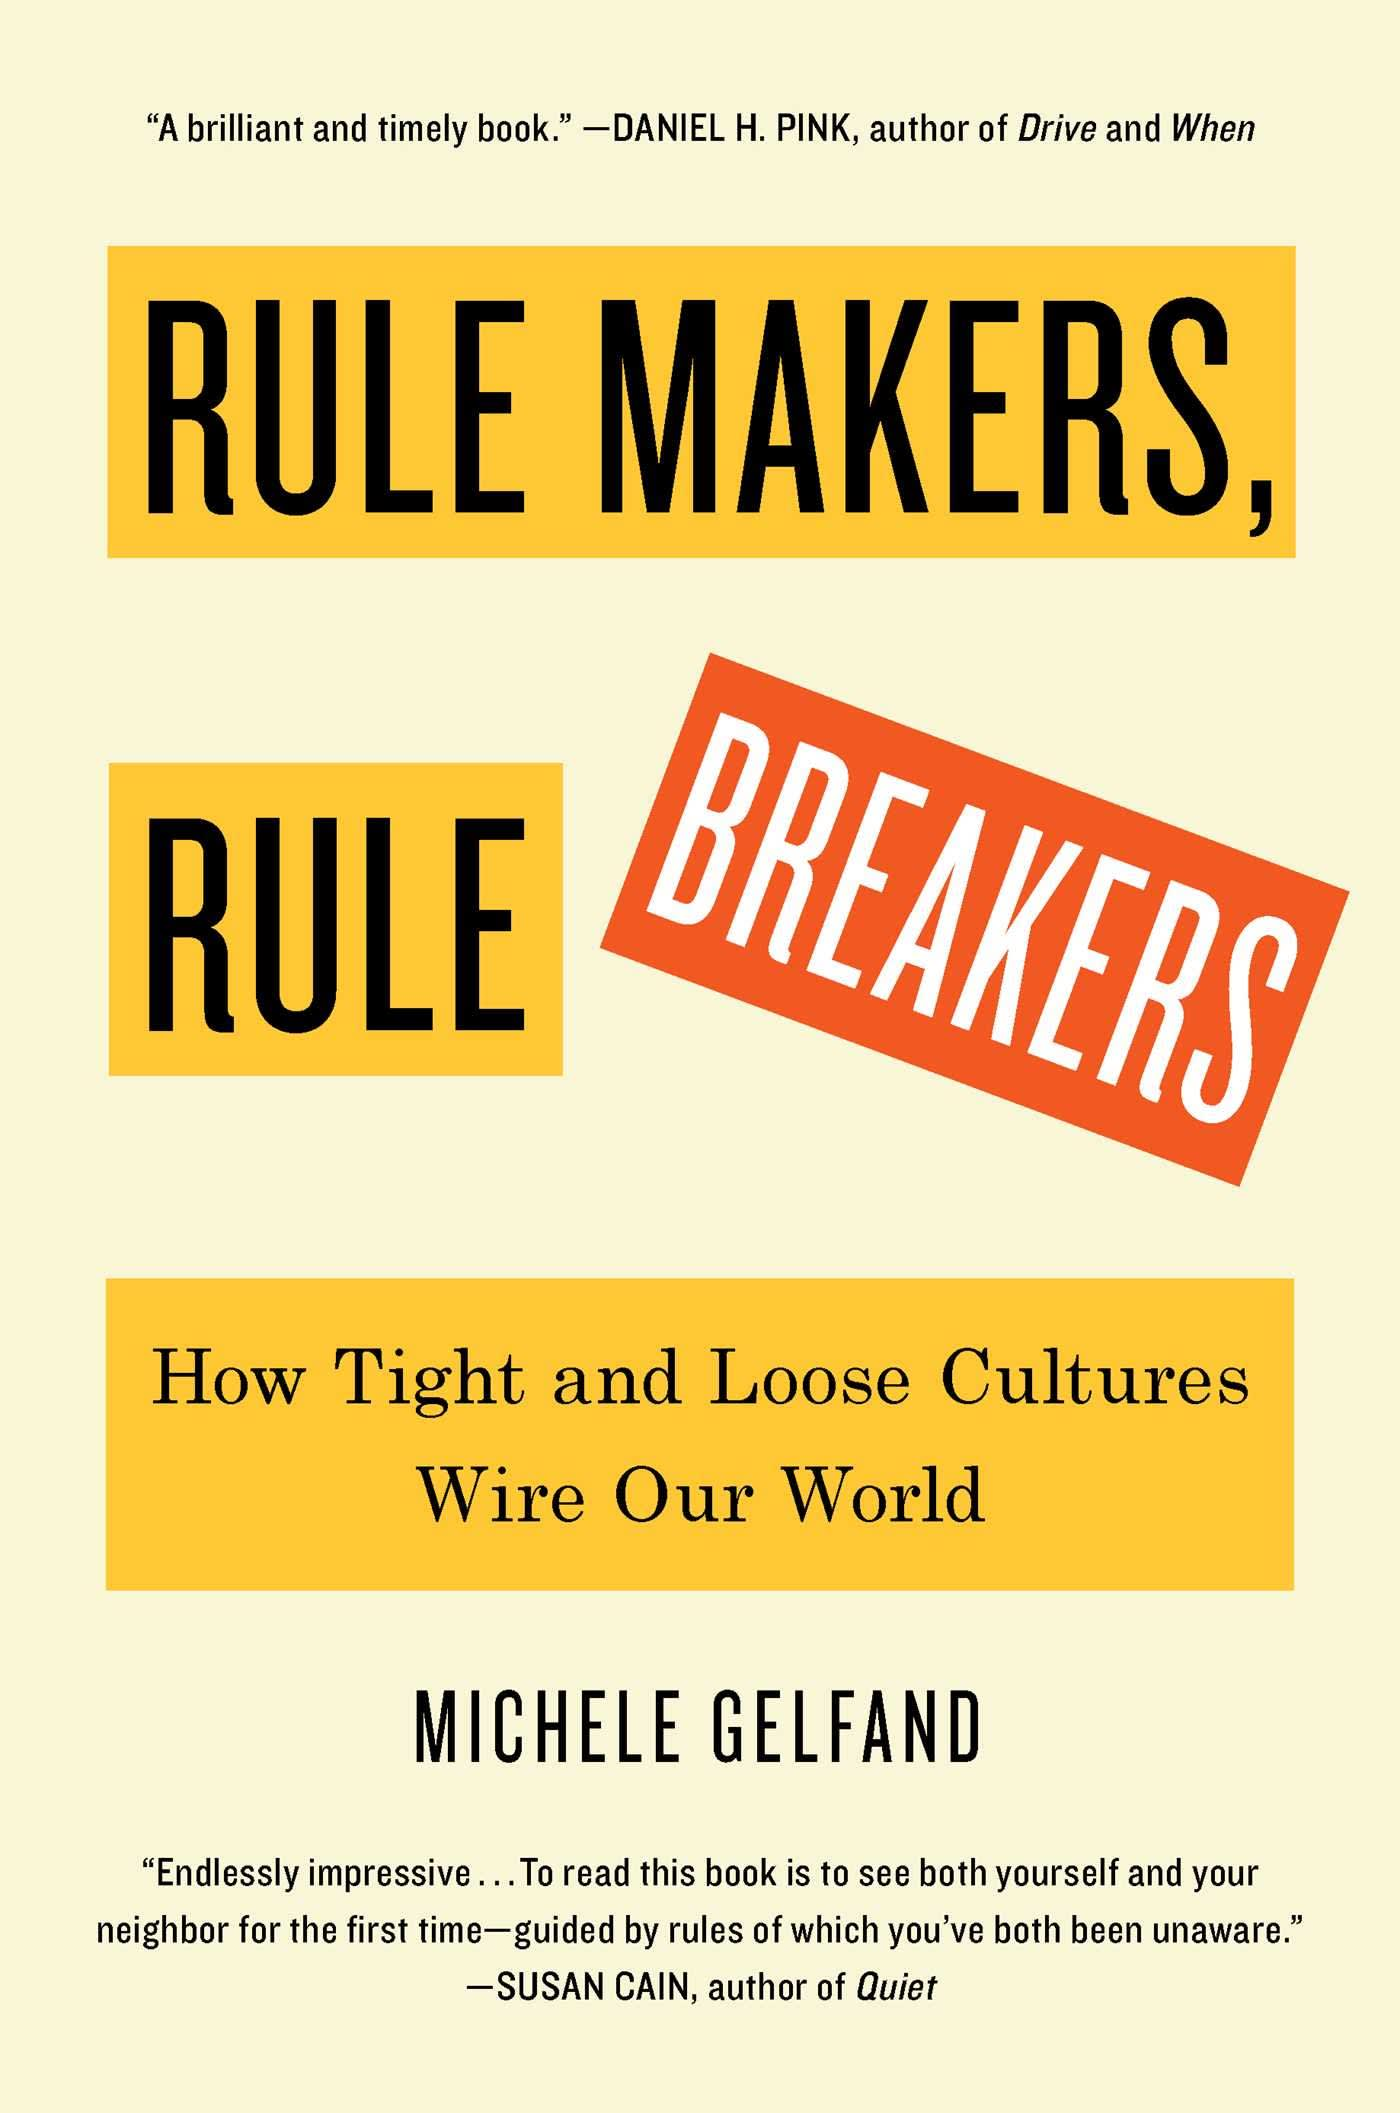 One time use: Rule makers, Rule Breakers cover